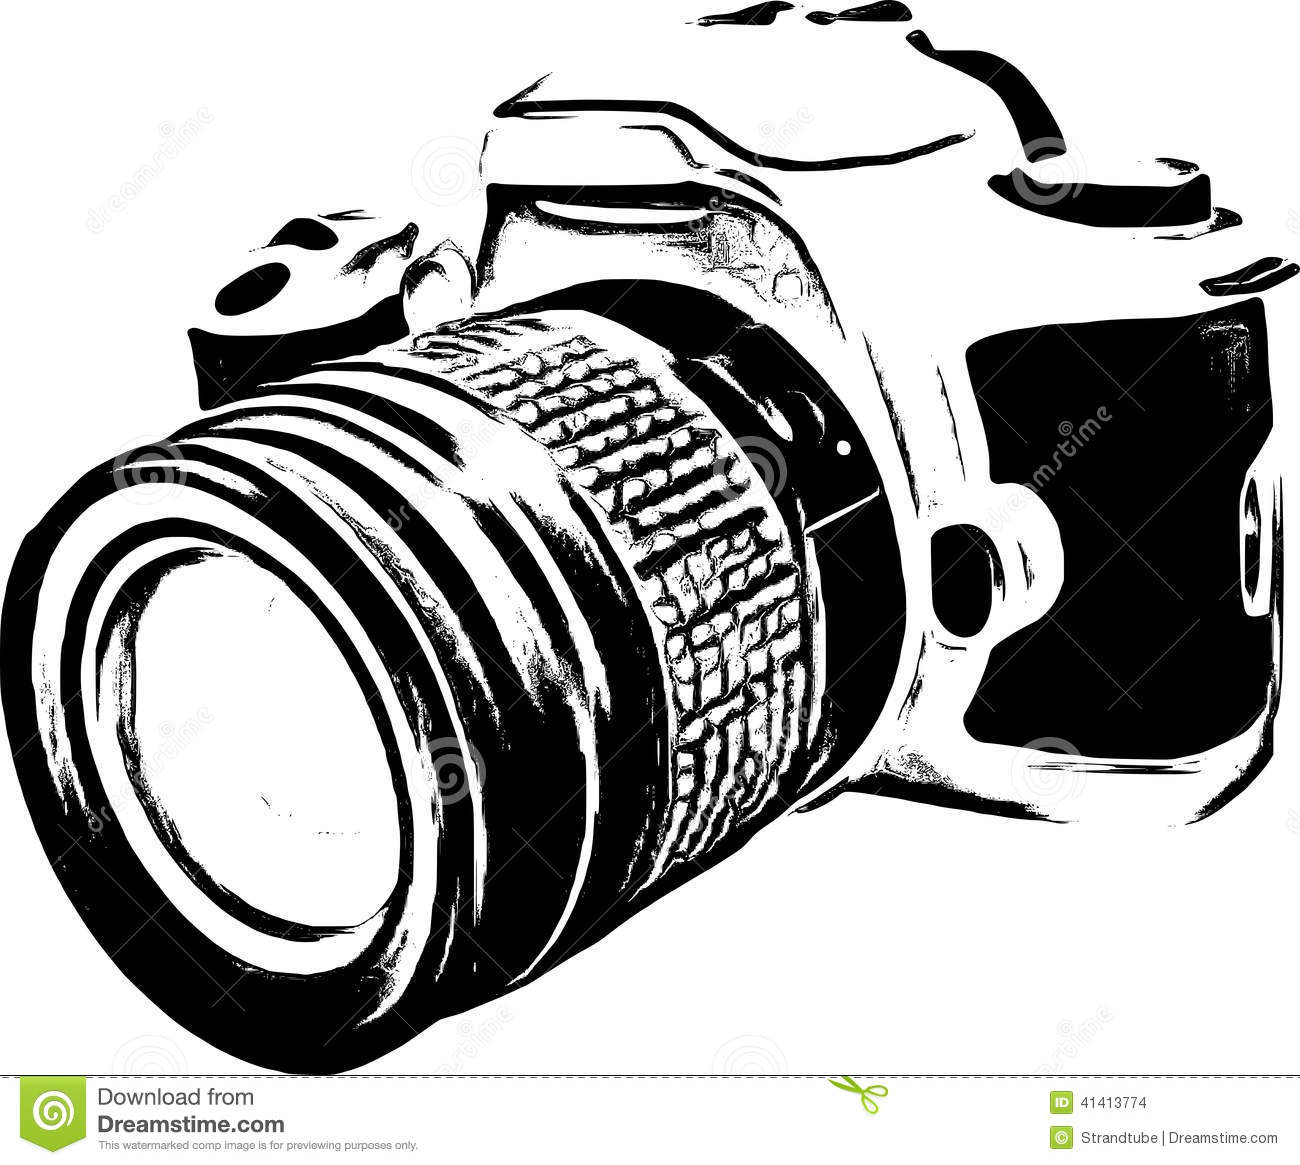 Stock Images: Line Art Camera Silhouette /Eps. Image: 41413774